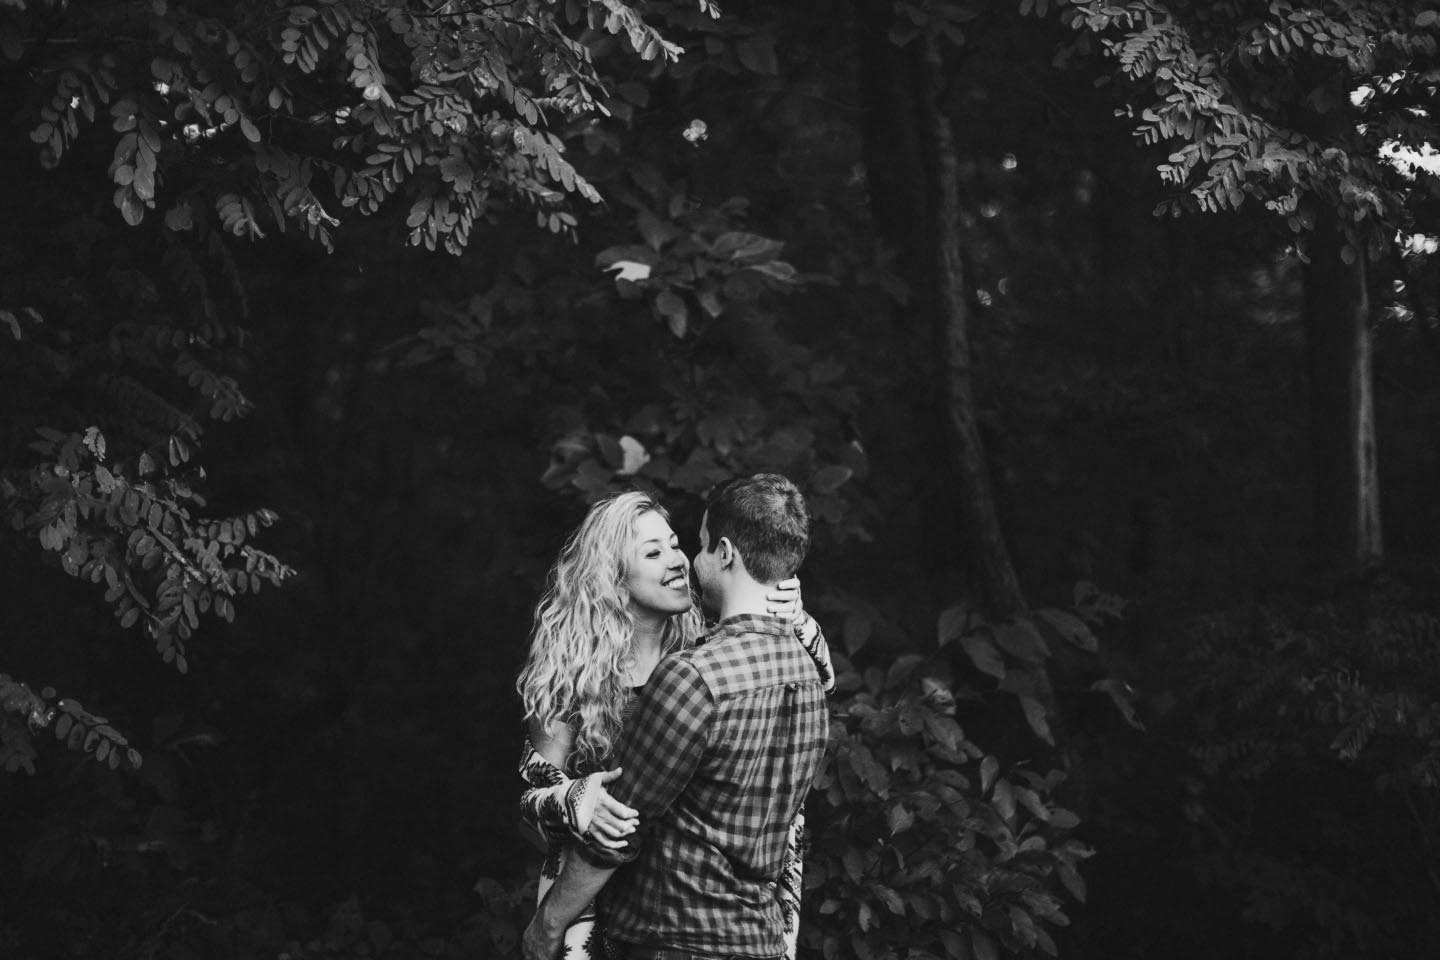 engagement session at a camp in maryland